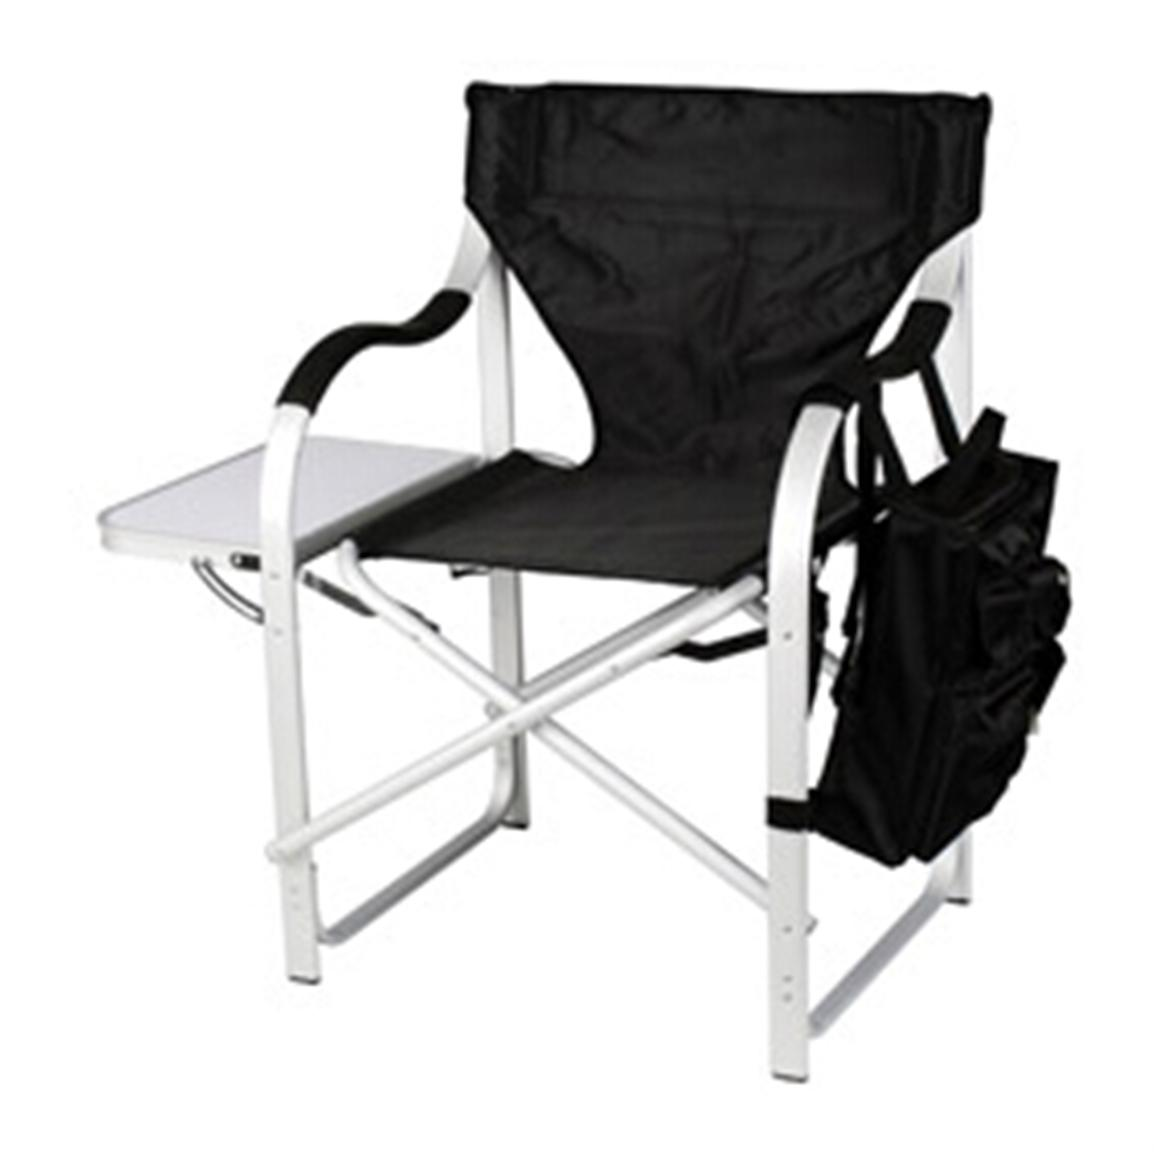 Stylish Camping Heavy-Duty, Full-Back Folding Director's Chair, Black